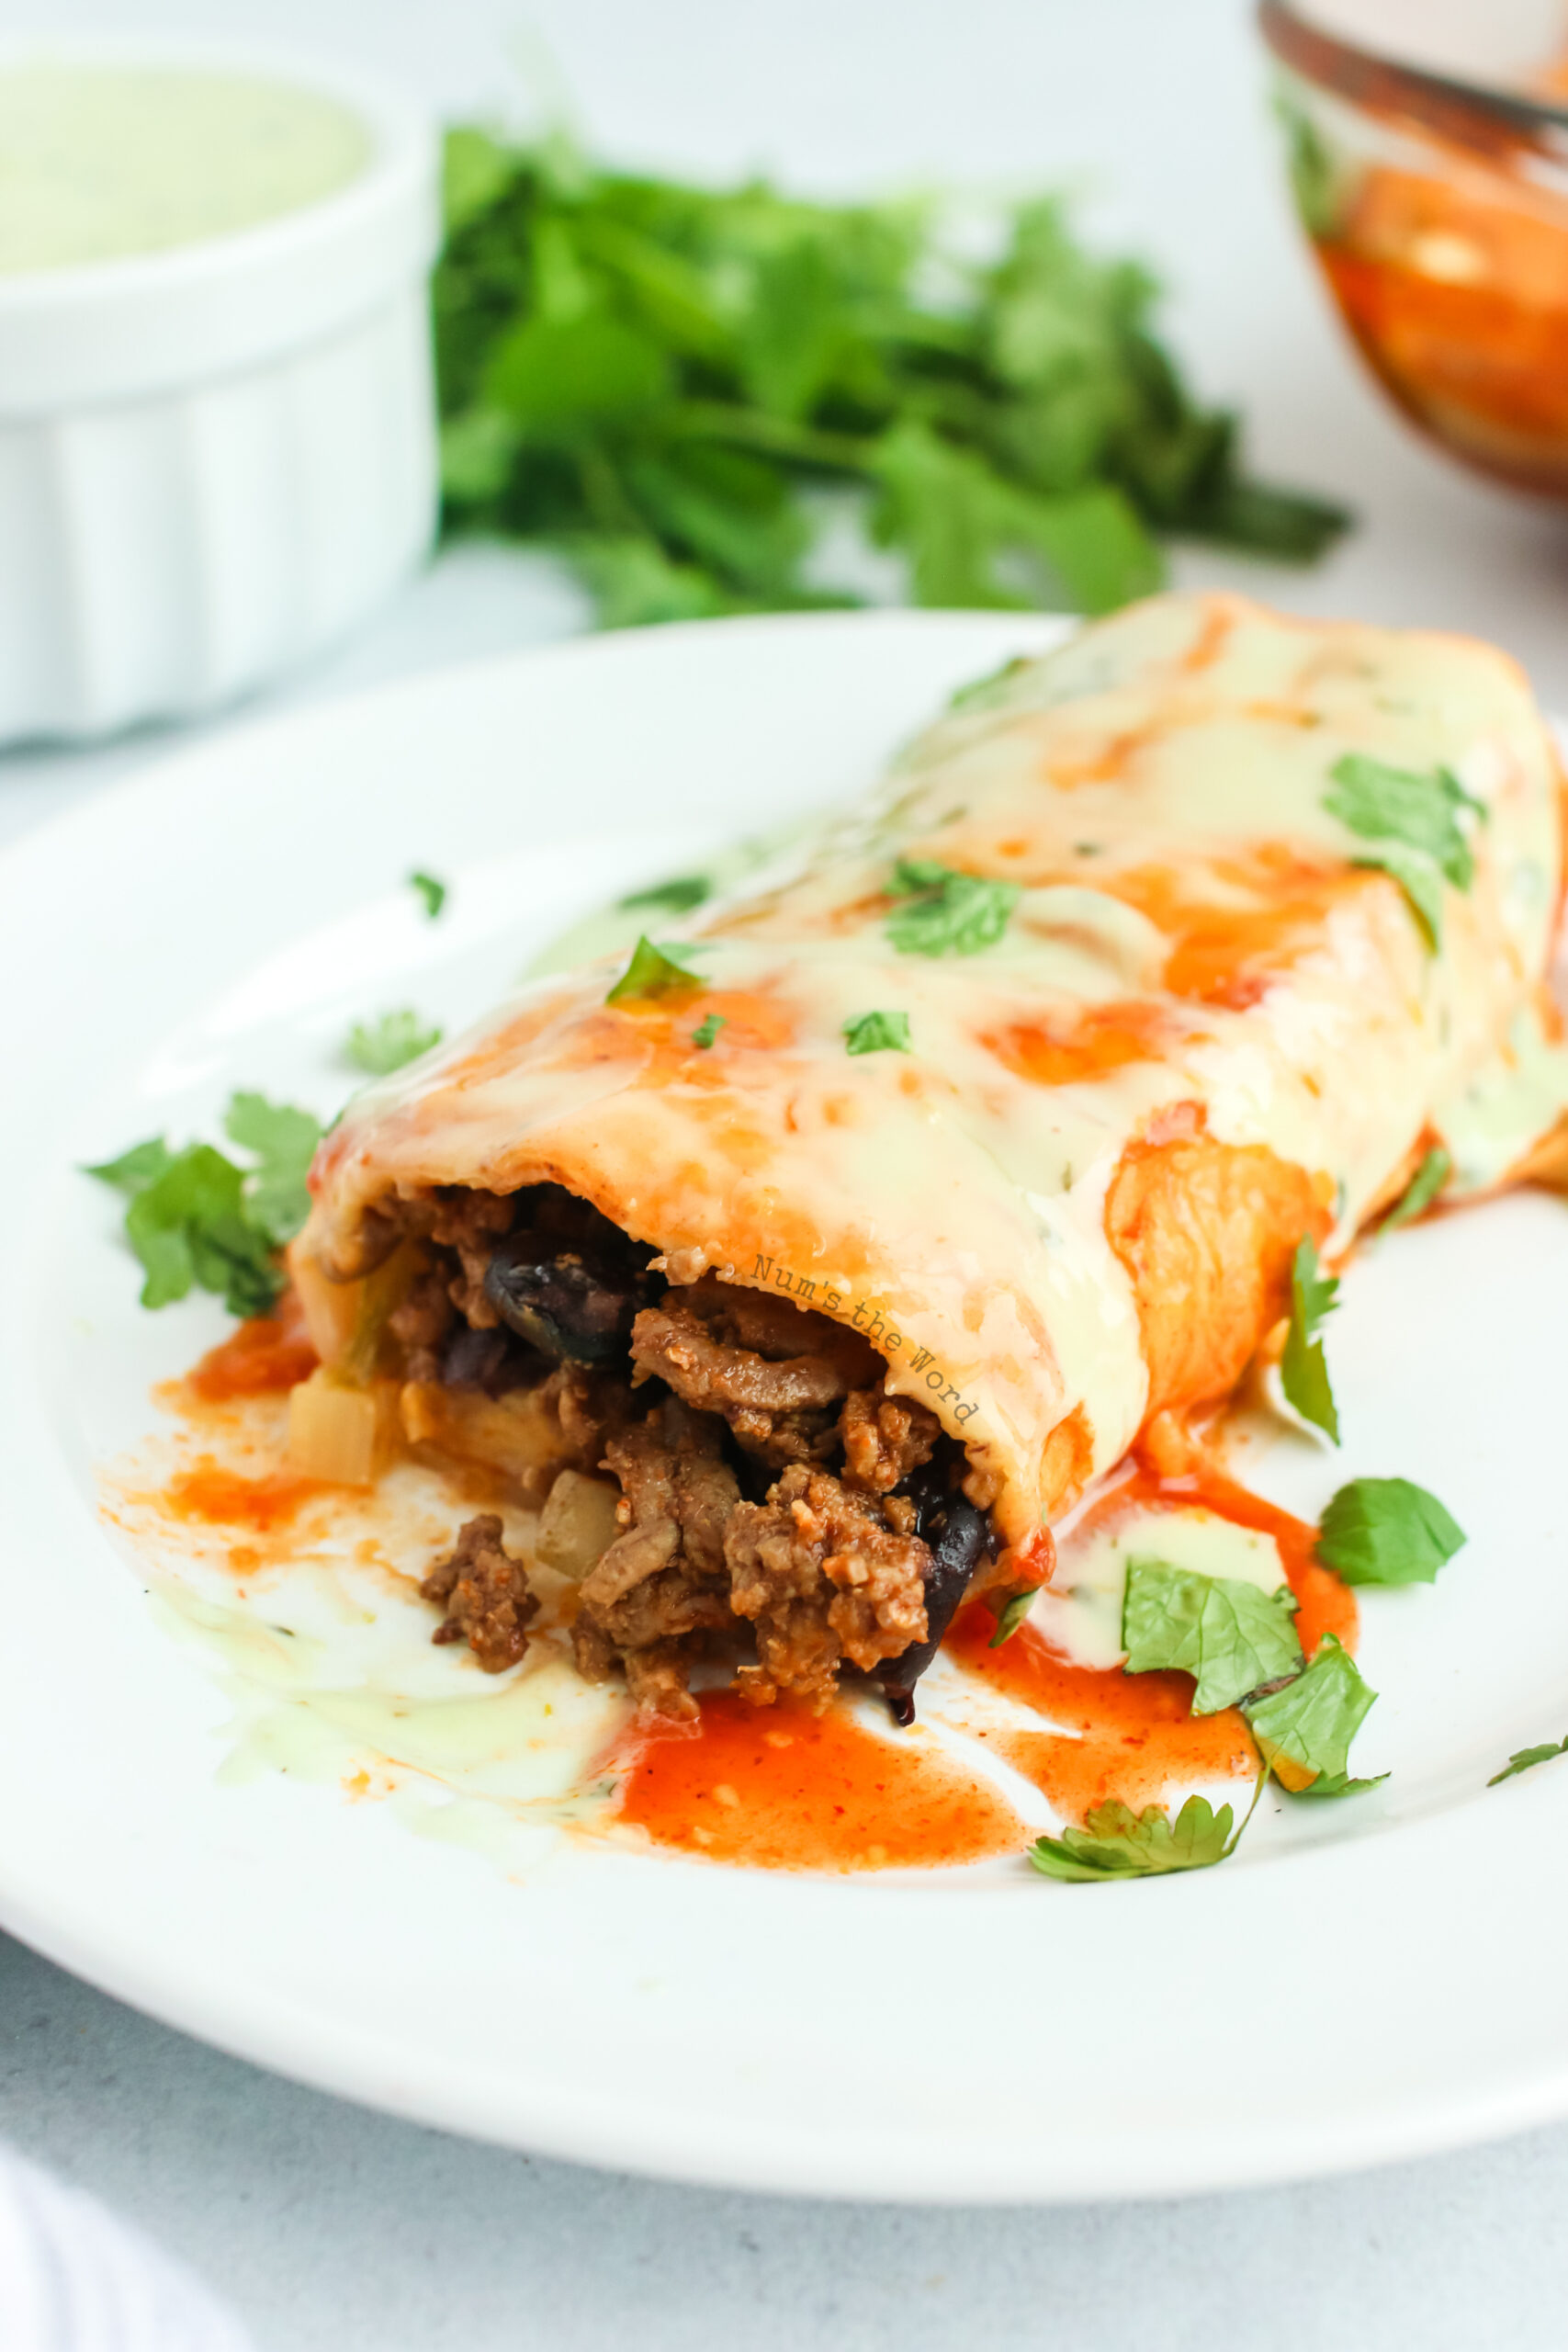 side view of burrito on a plate with meat showing